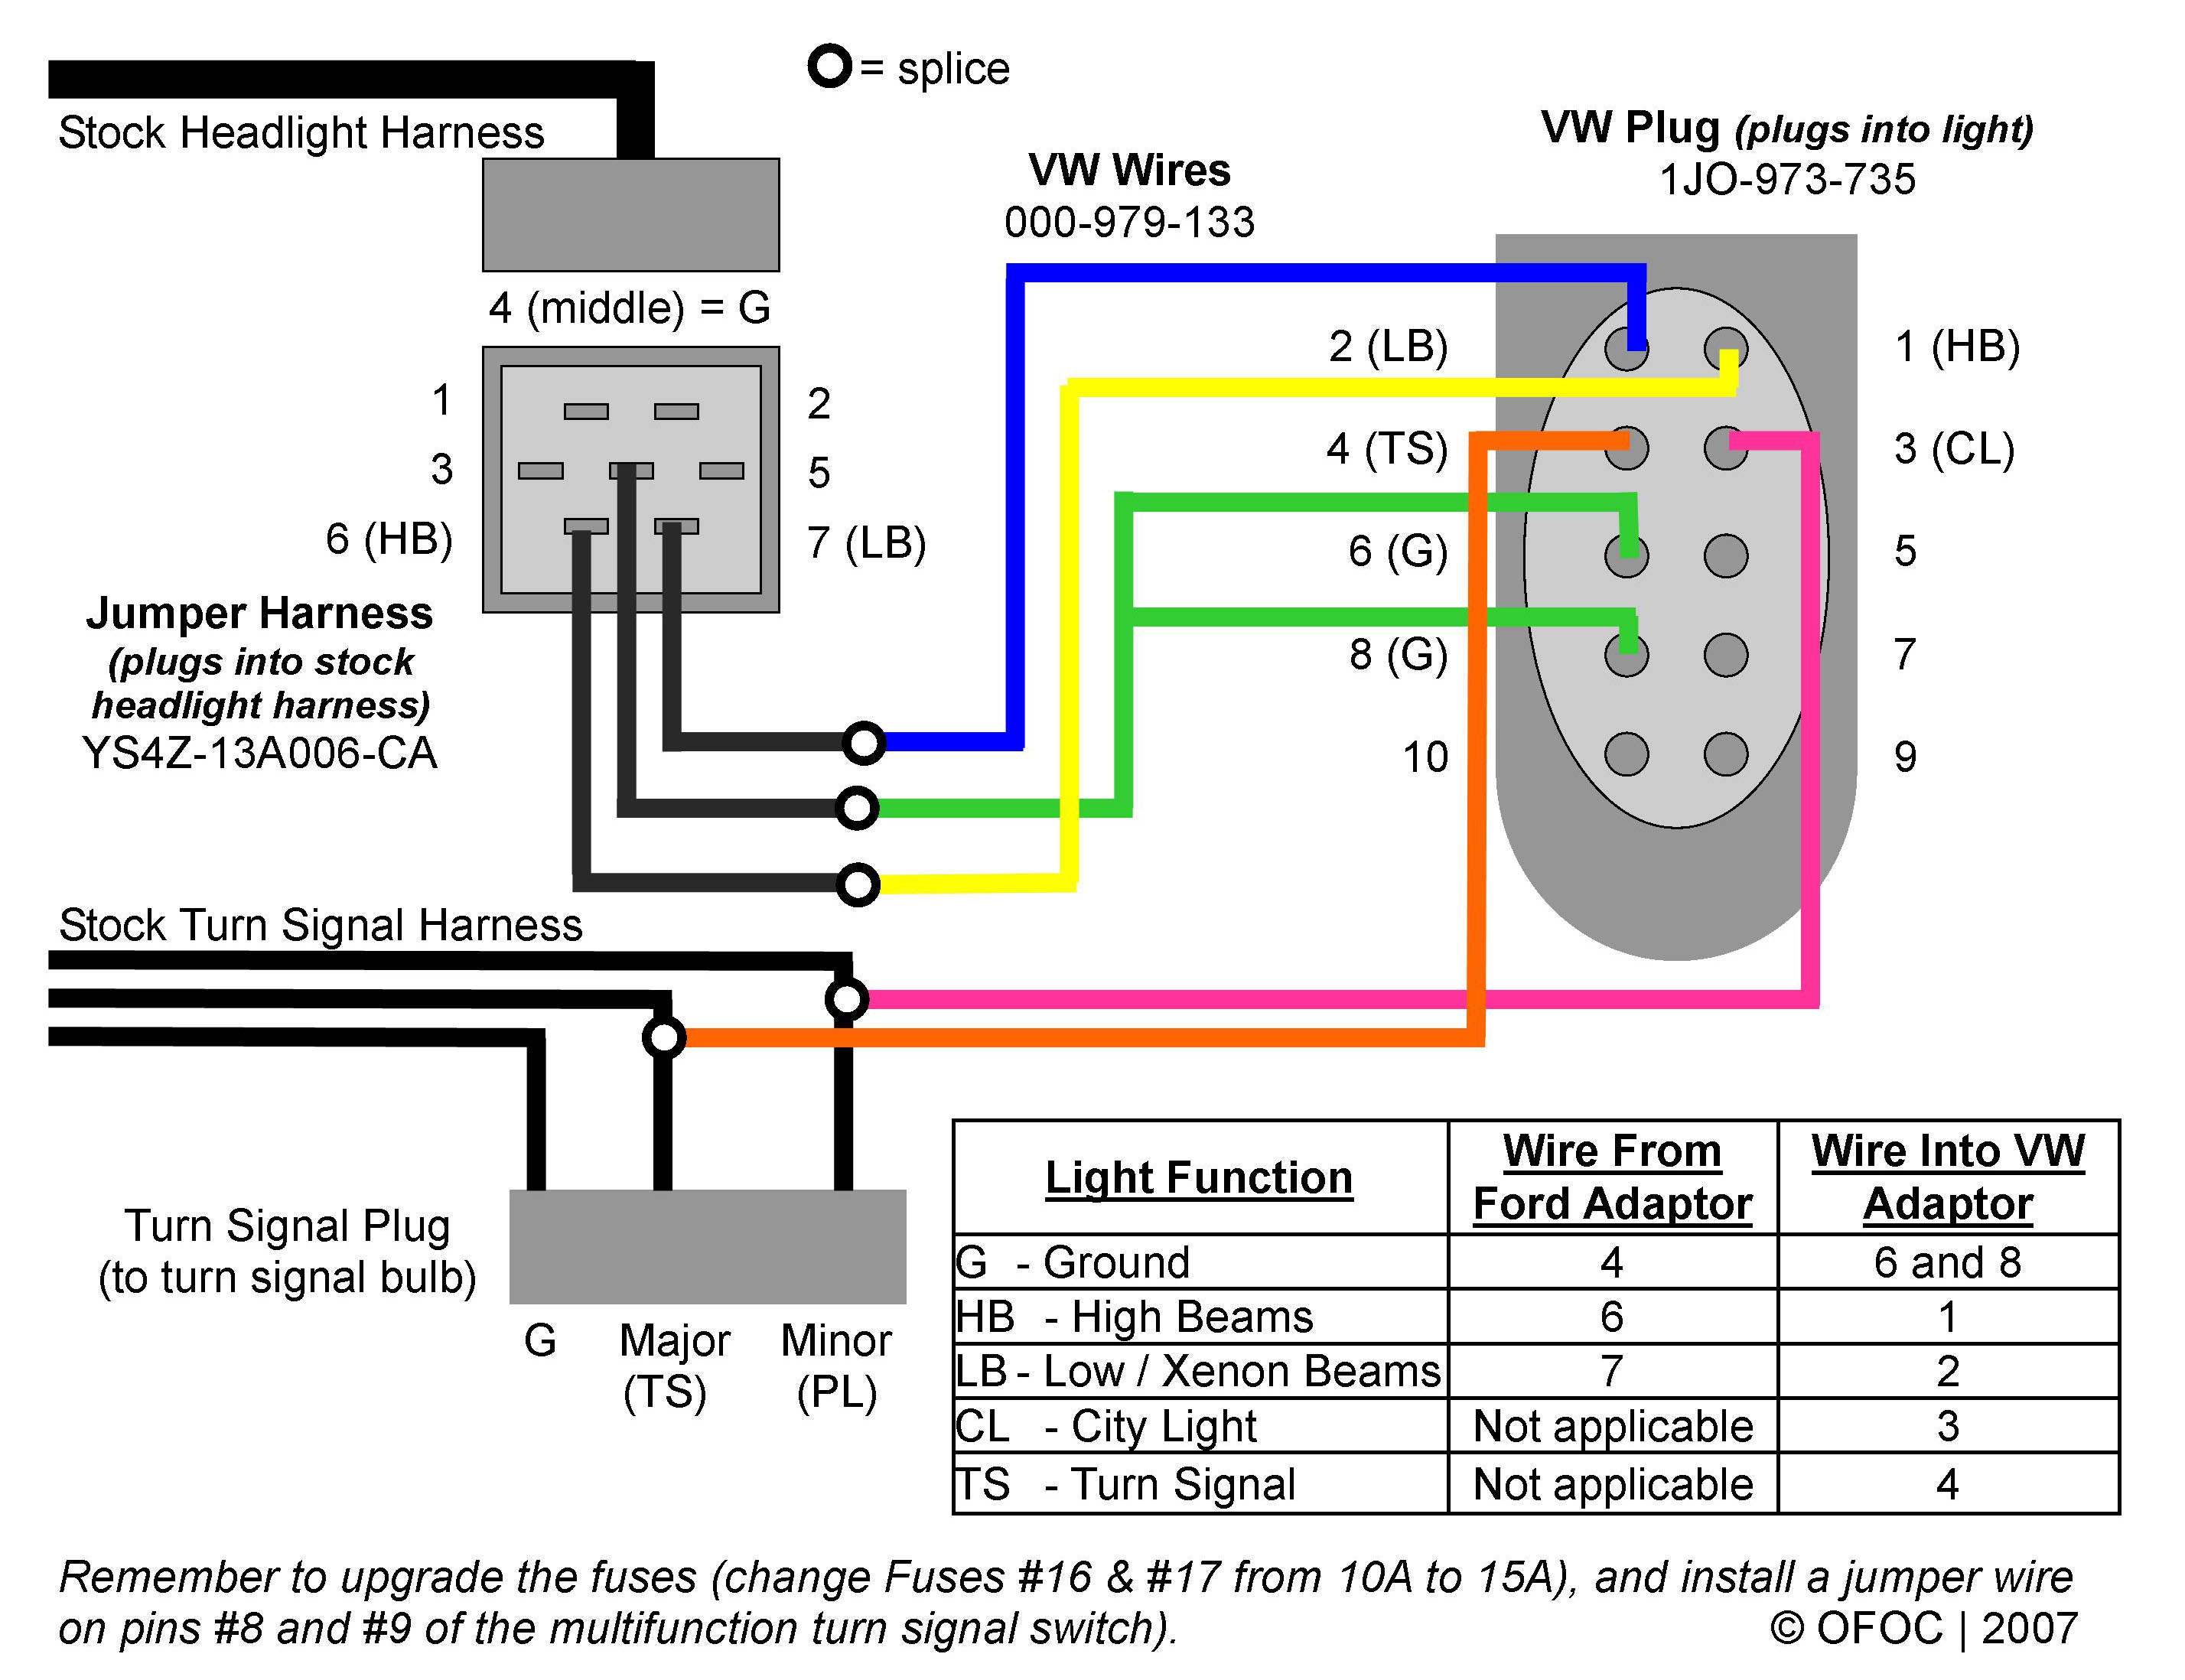 wiringschematic how to vw wiring hack (convert your car to euro mach headlights 2002 jetta headlight wiring diagram at creativeand.co